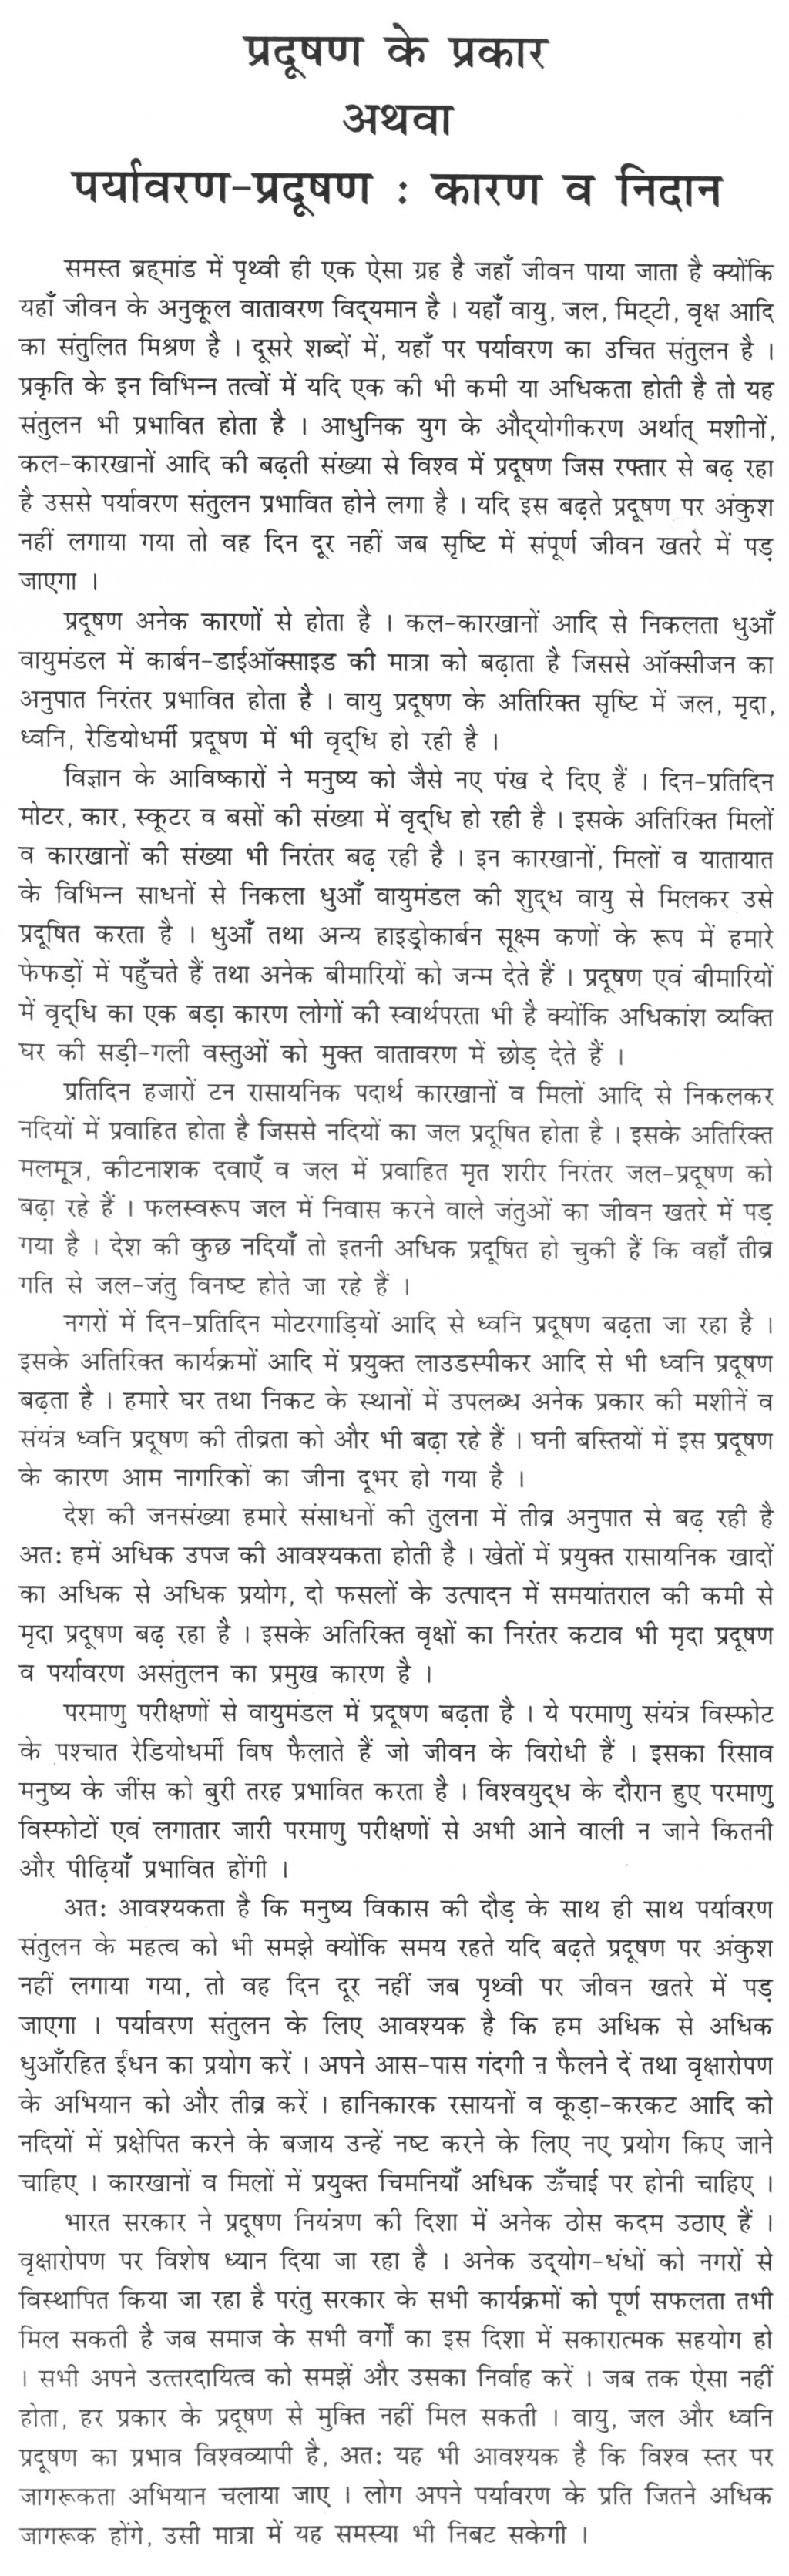 014 Good Habits Essay In Hindi Exceptional Healthy Eating Reading Is A Habit Large